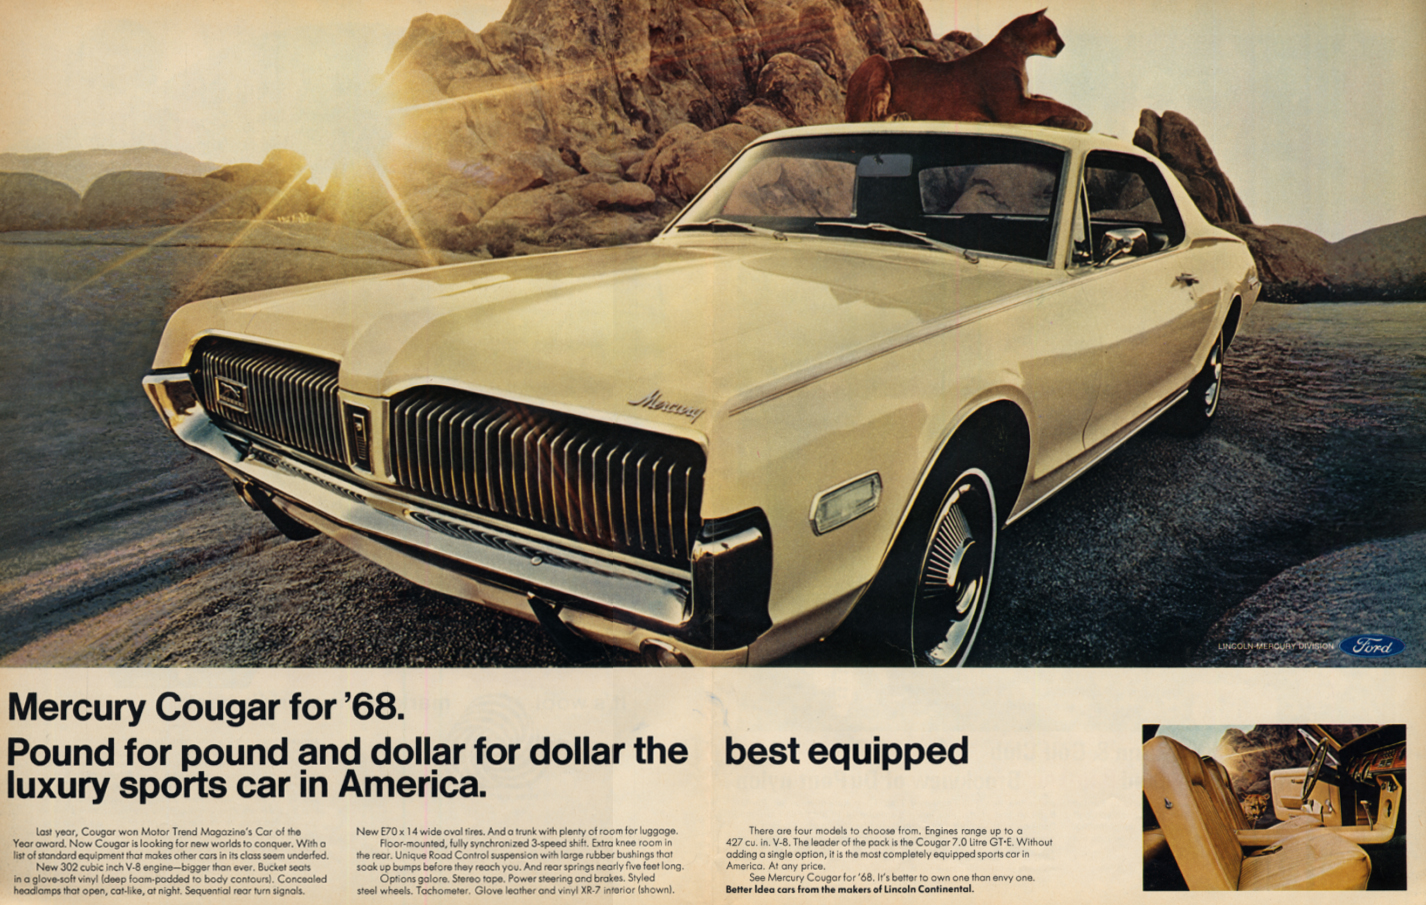 Best equipped luxury sports car in America - Mercury Cougar ad 1968 LK